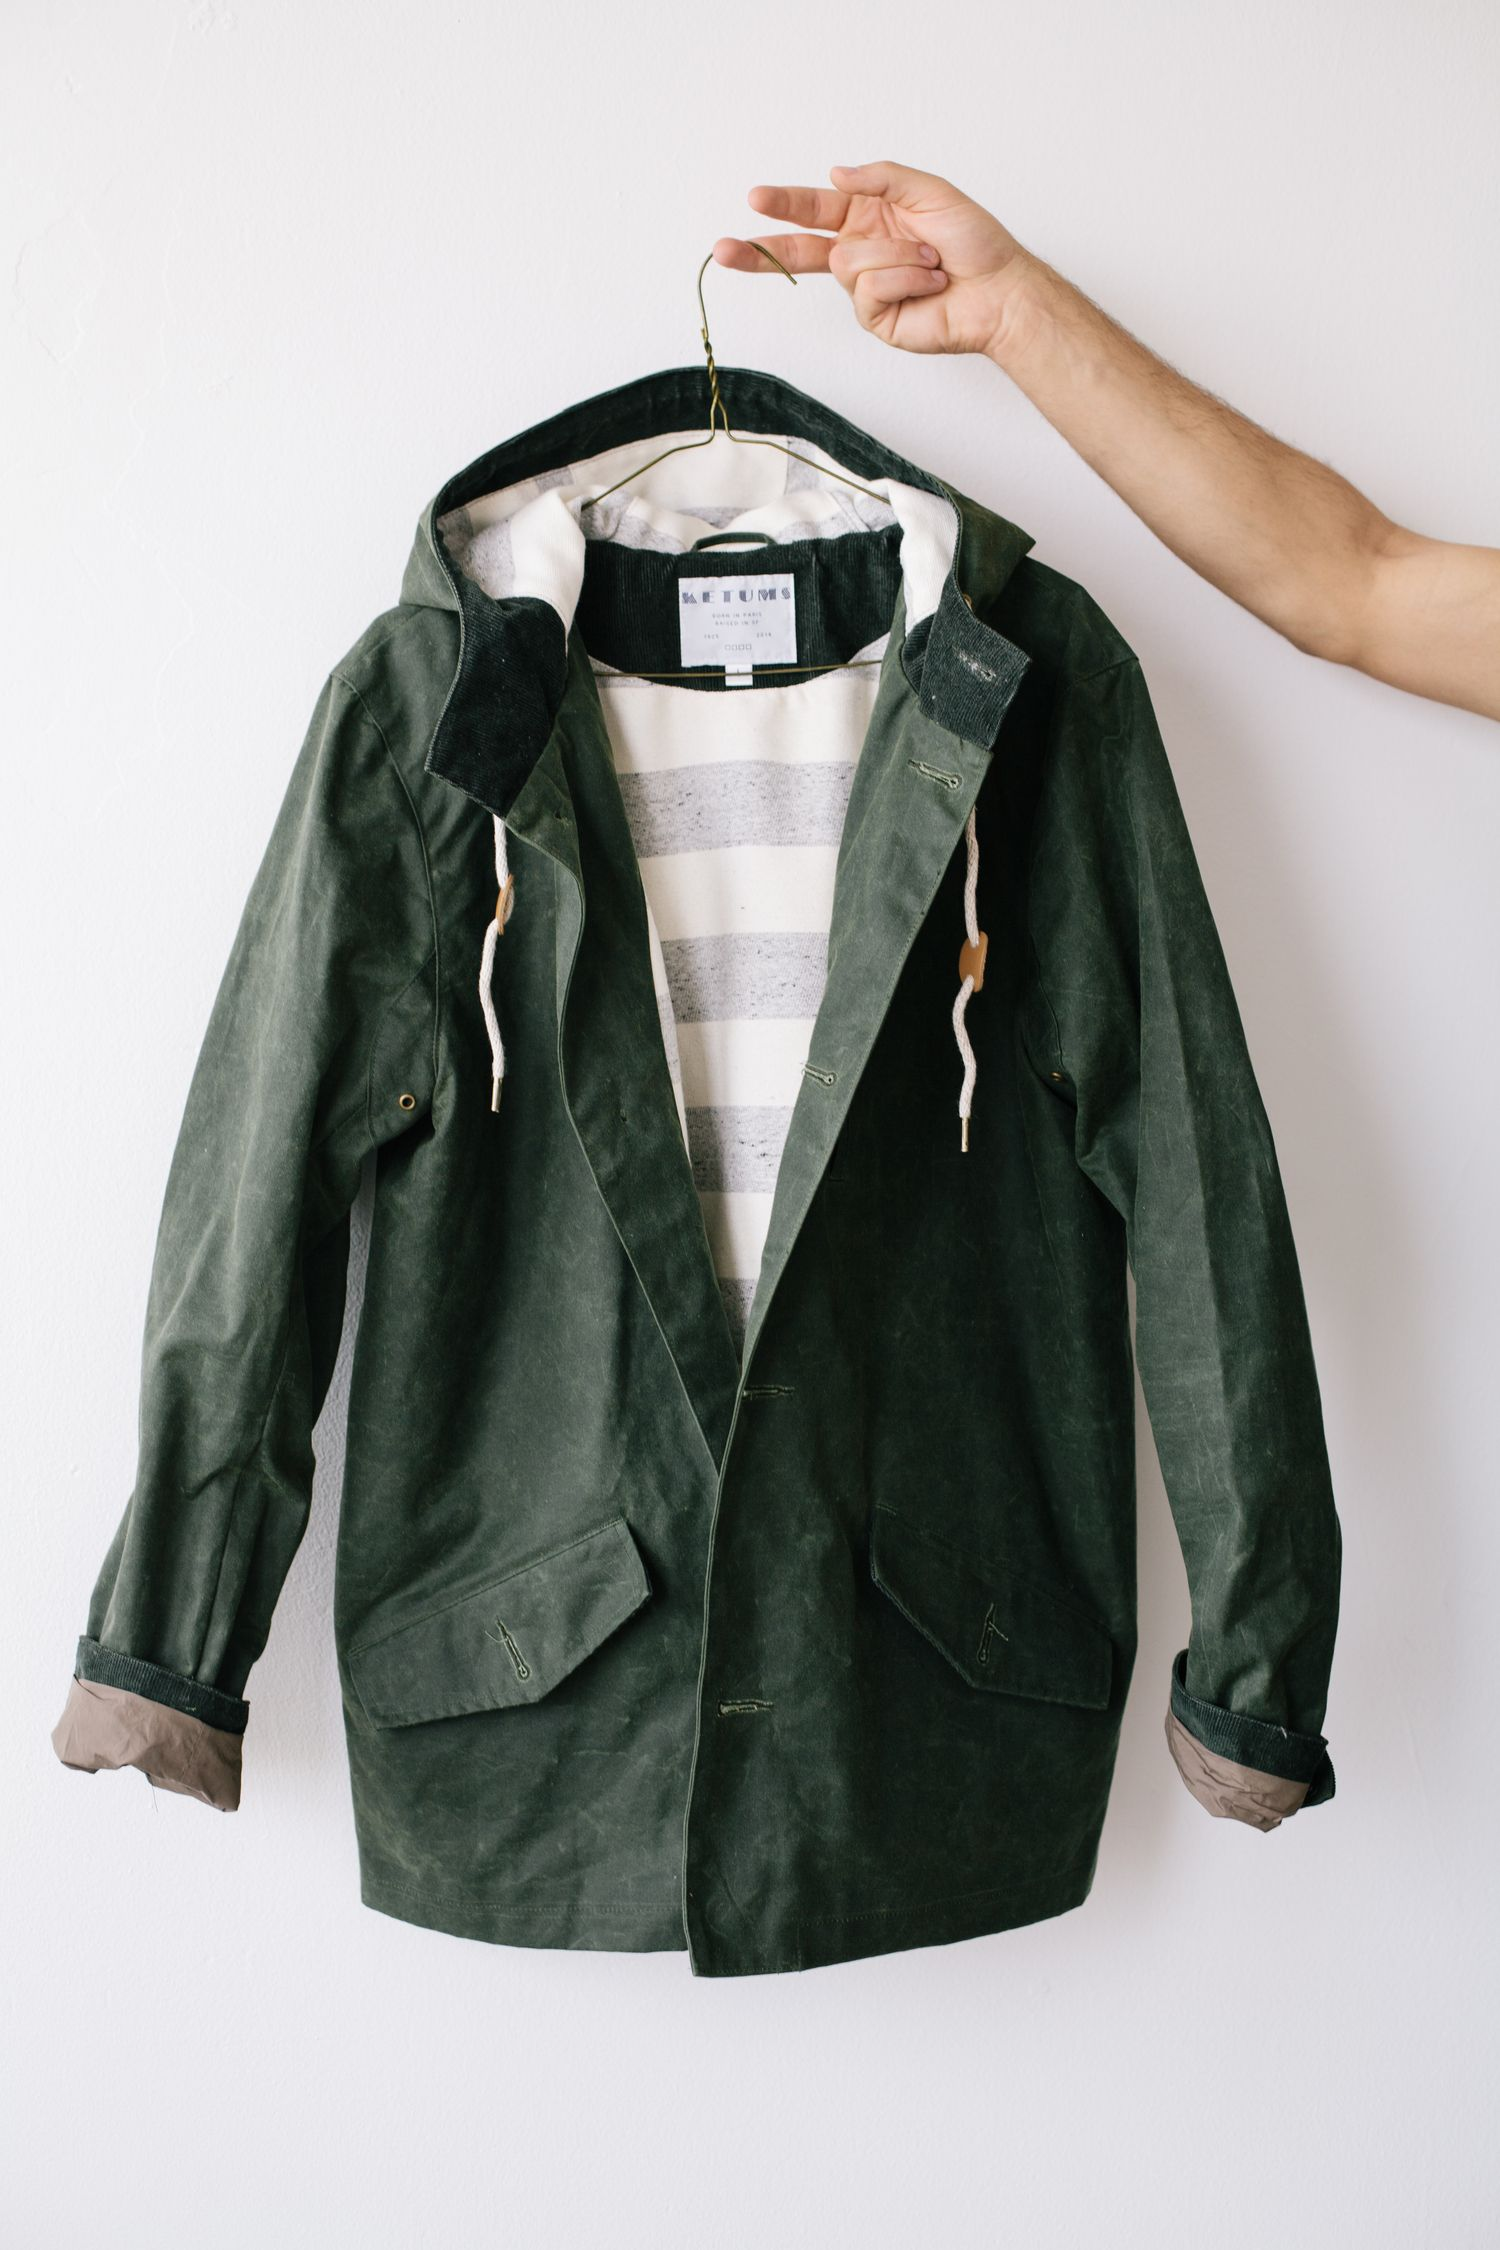 Flannel hoodie jacket women's  Waxed canvas jacket from Ketums Looks like the kind of military